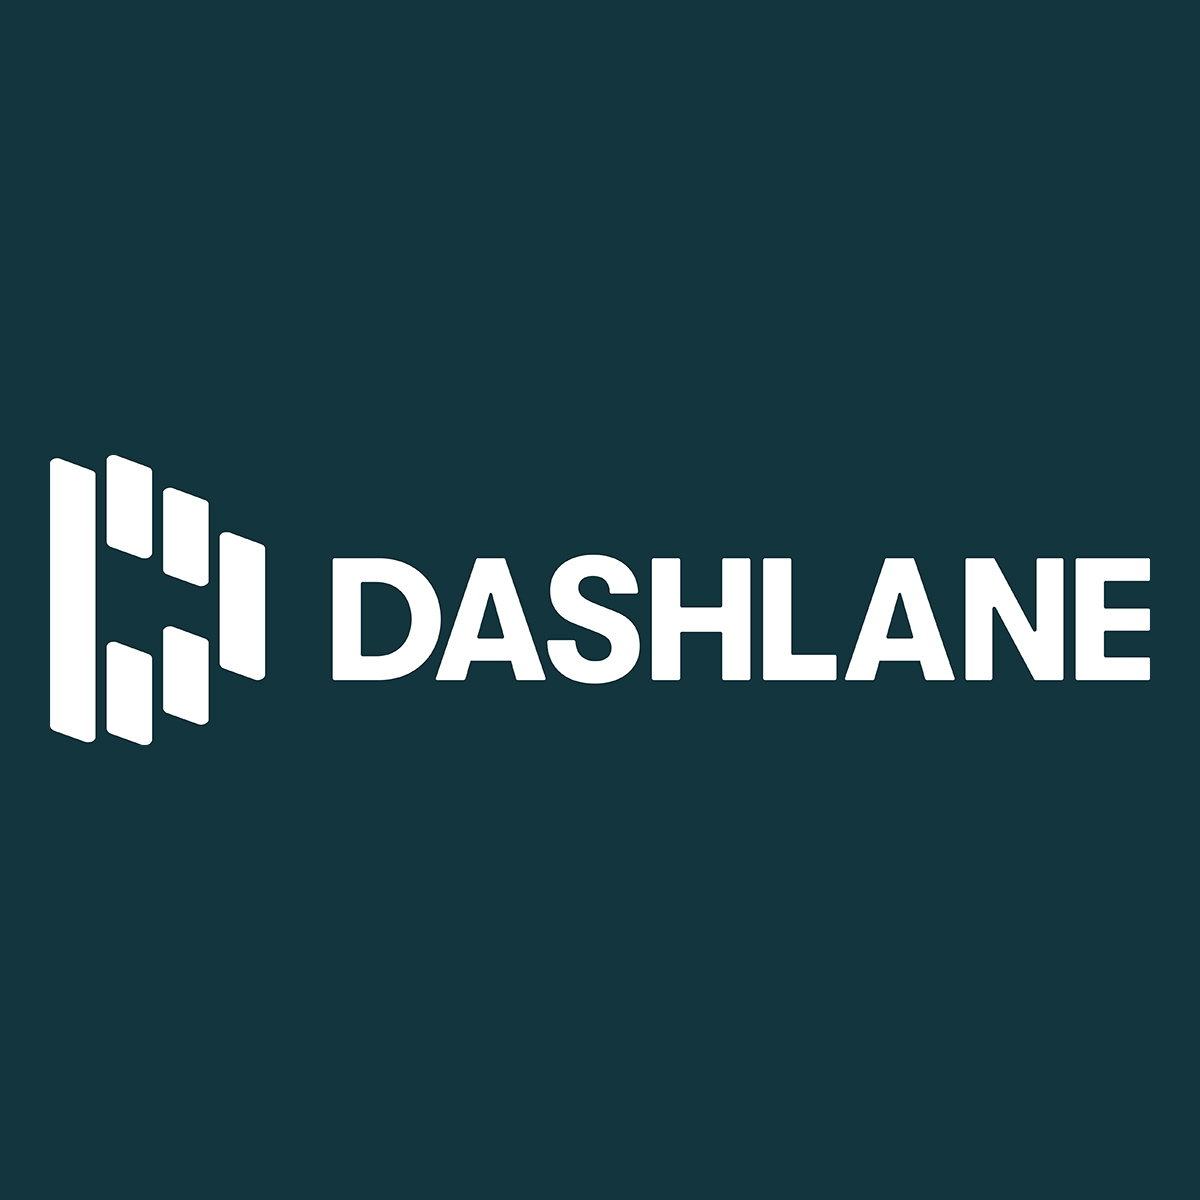 Pentagram Rebrands Dashlane